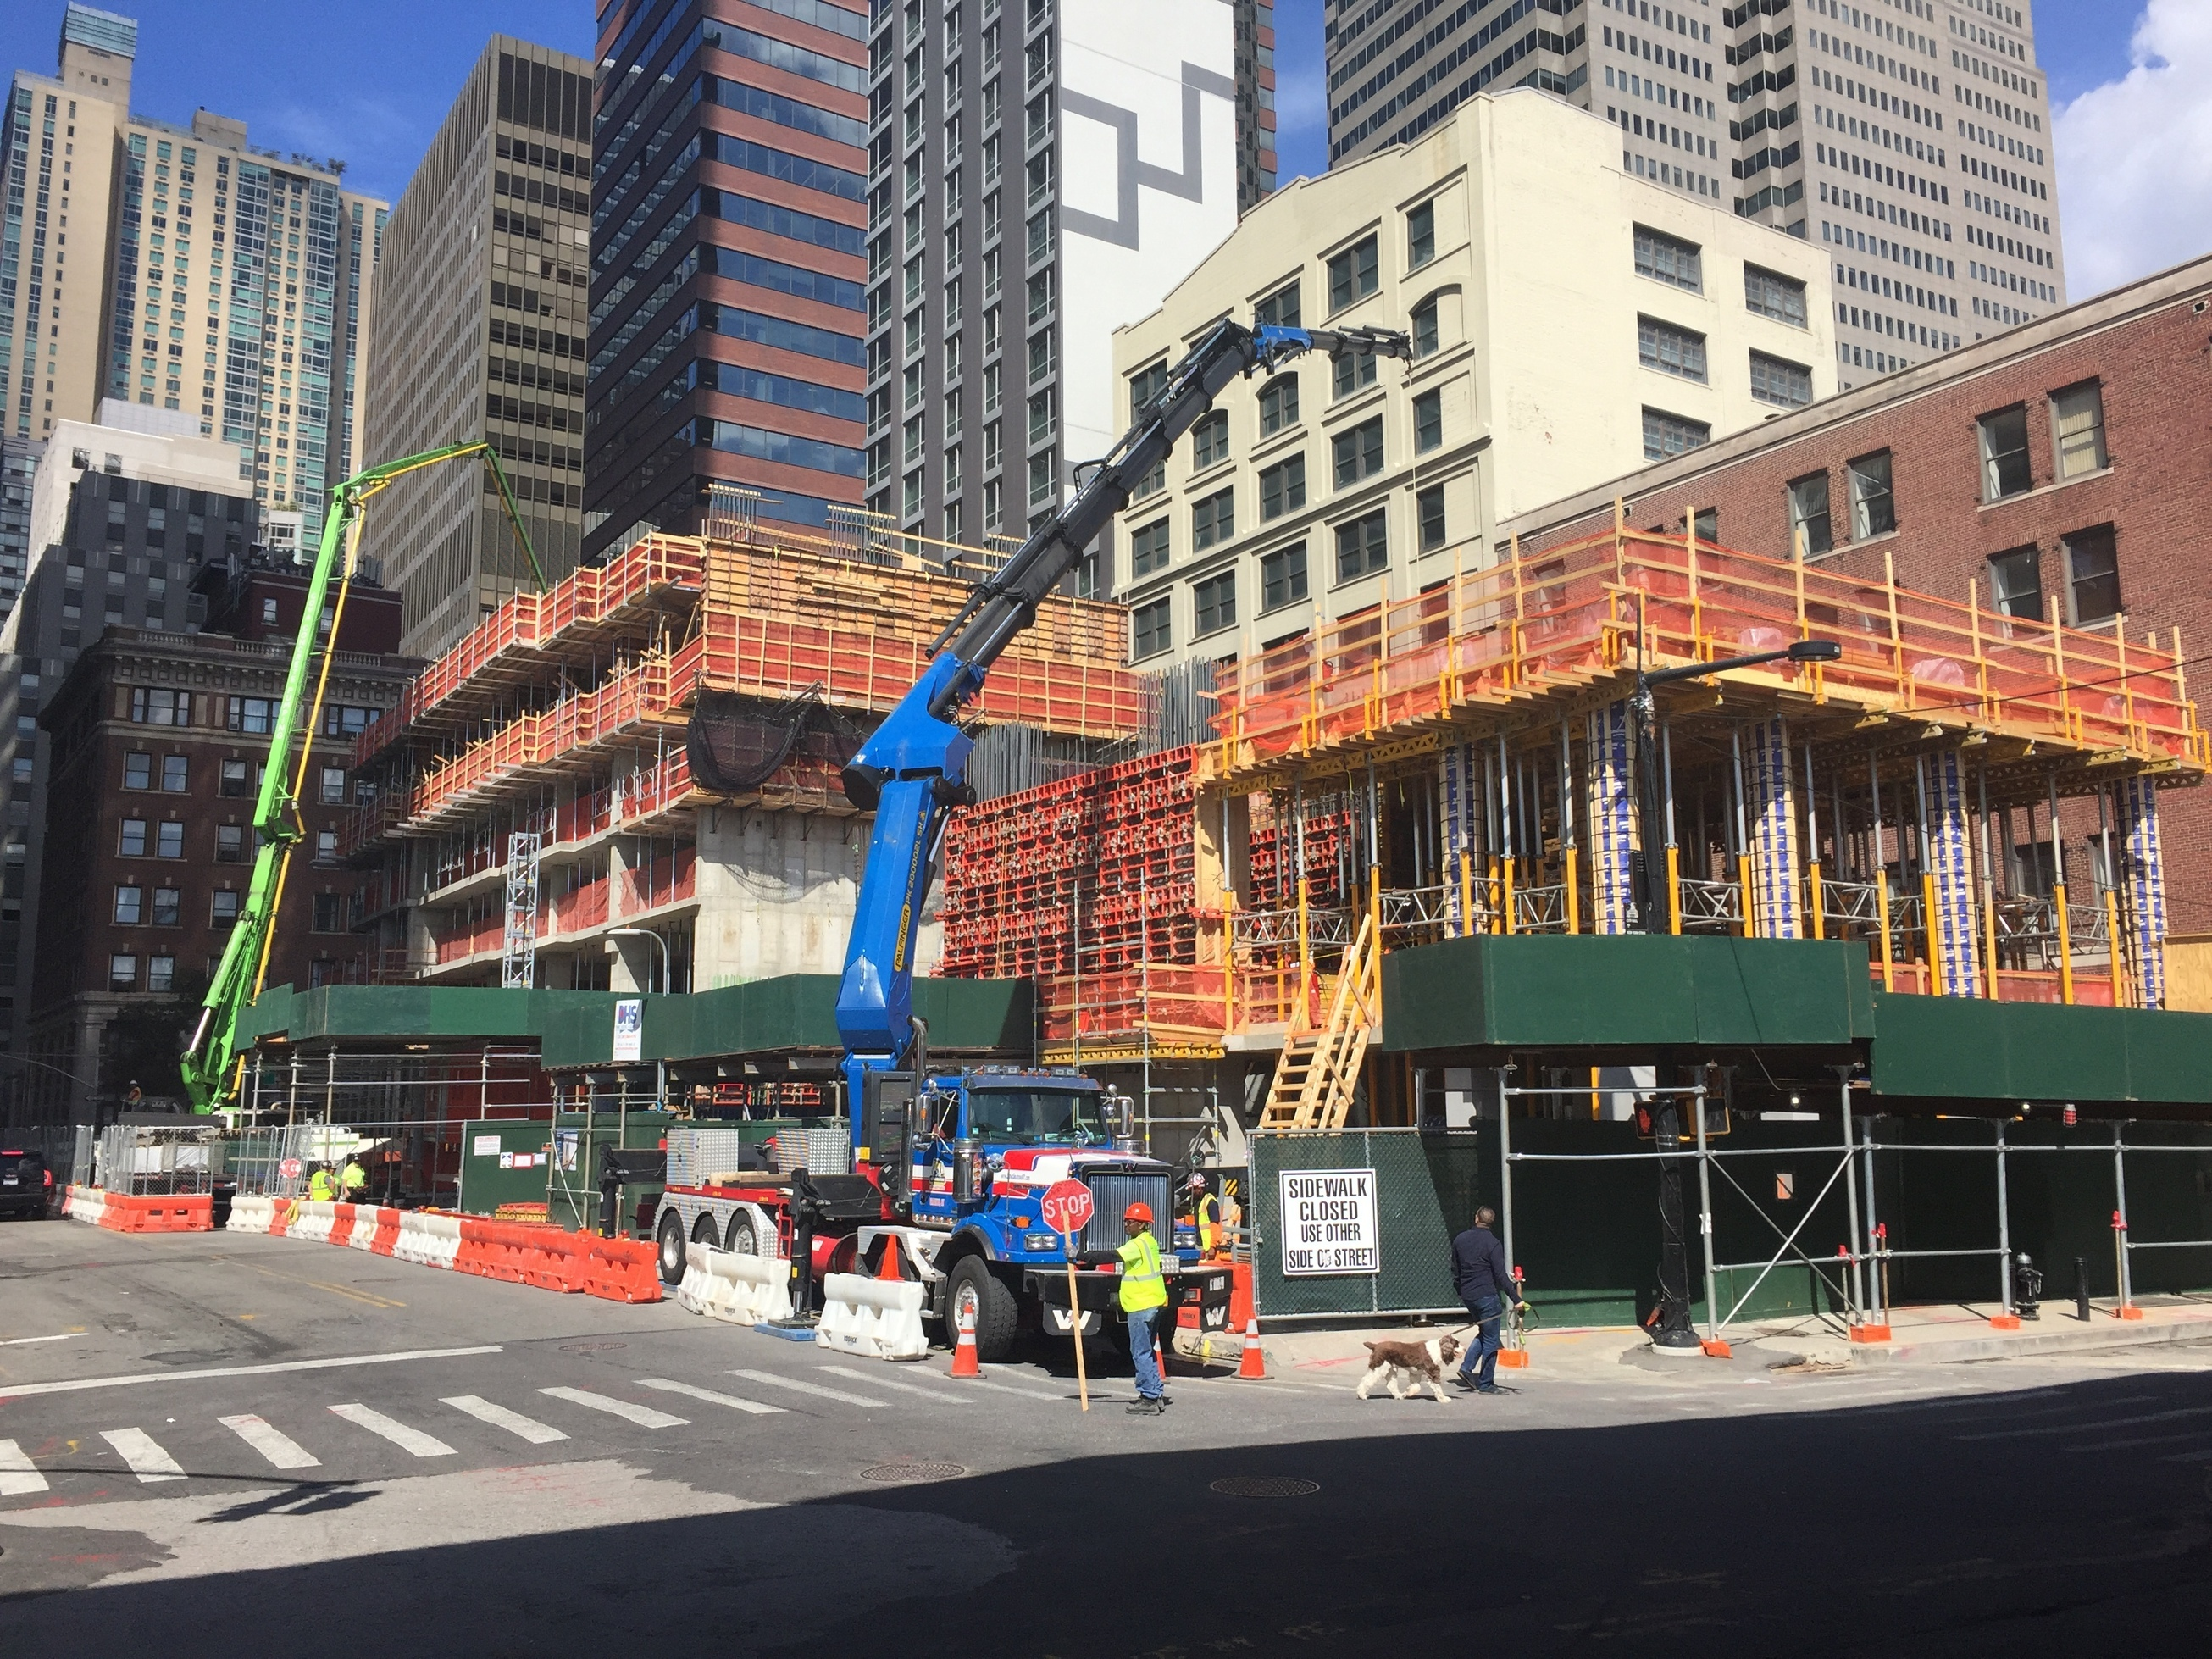 151 Maiden Lane at left, One Seaport at right